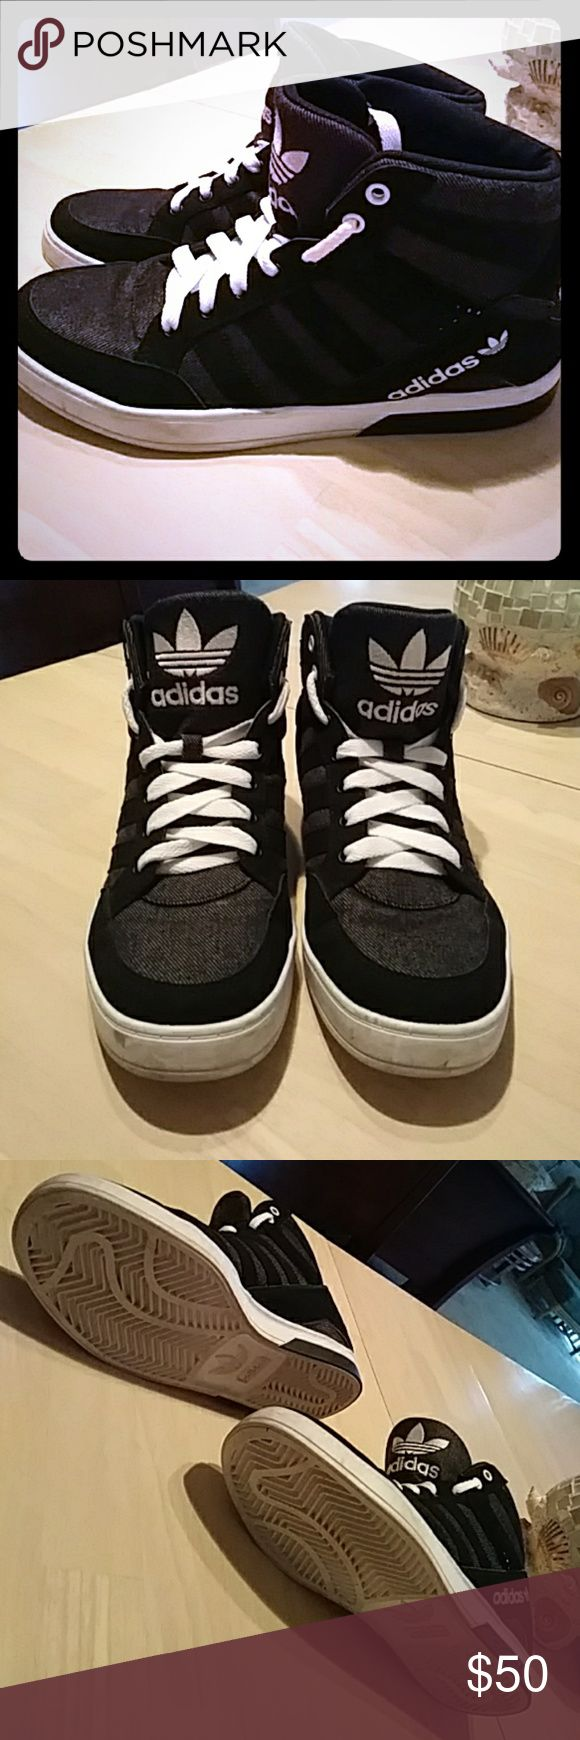 Adidas High Top Mainly Black Grey And White Shoes